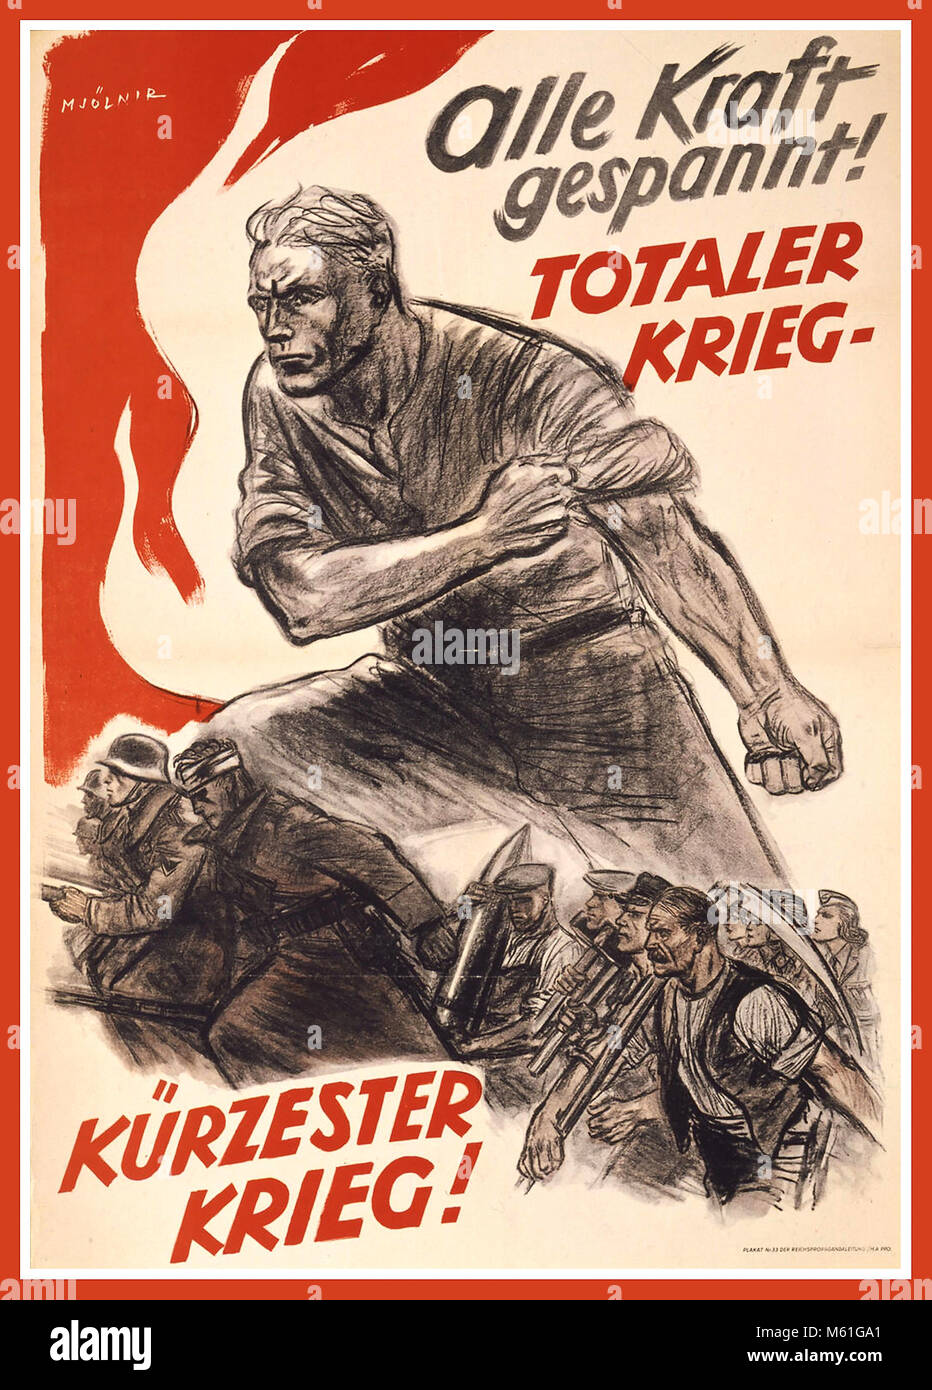 1940's WW2 Vintage Nazi Germany Propaganda Poster 'With all power ready total war...Shortest war' Stock Photo